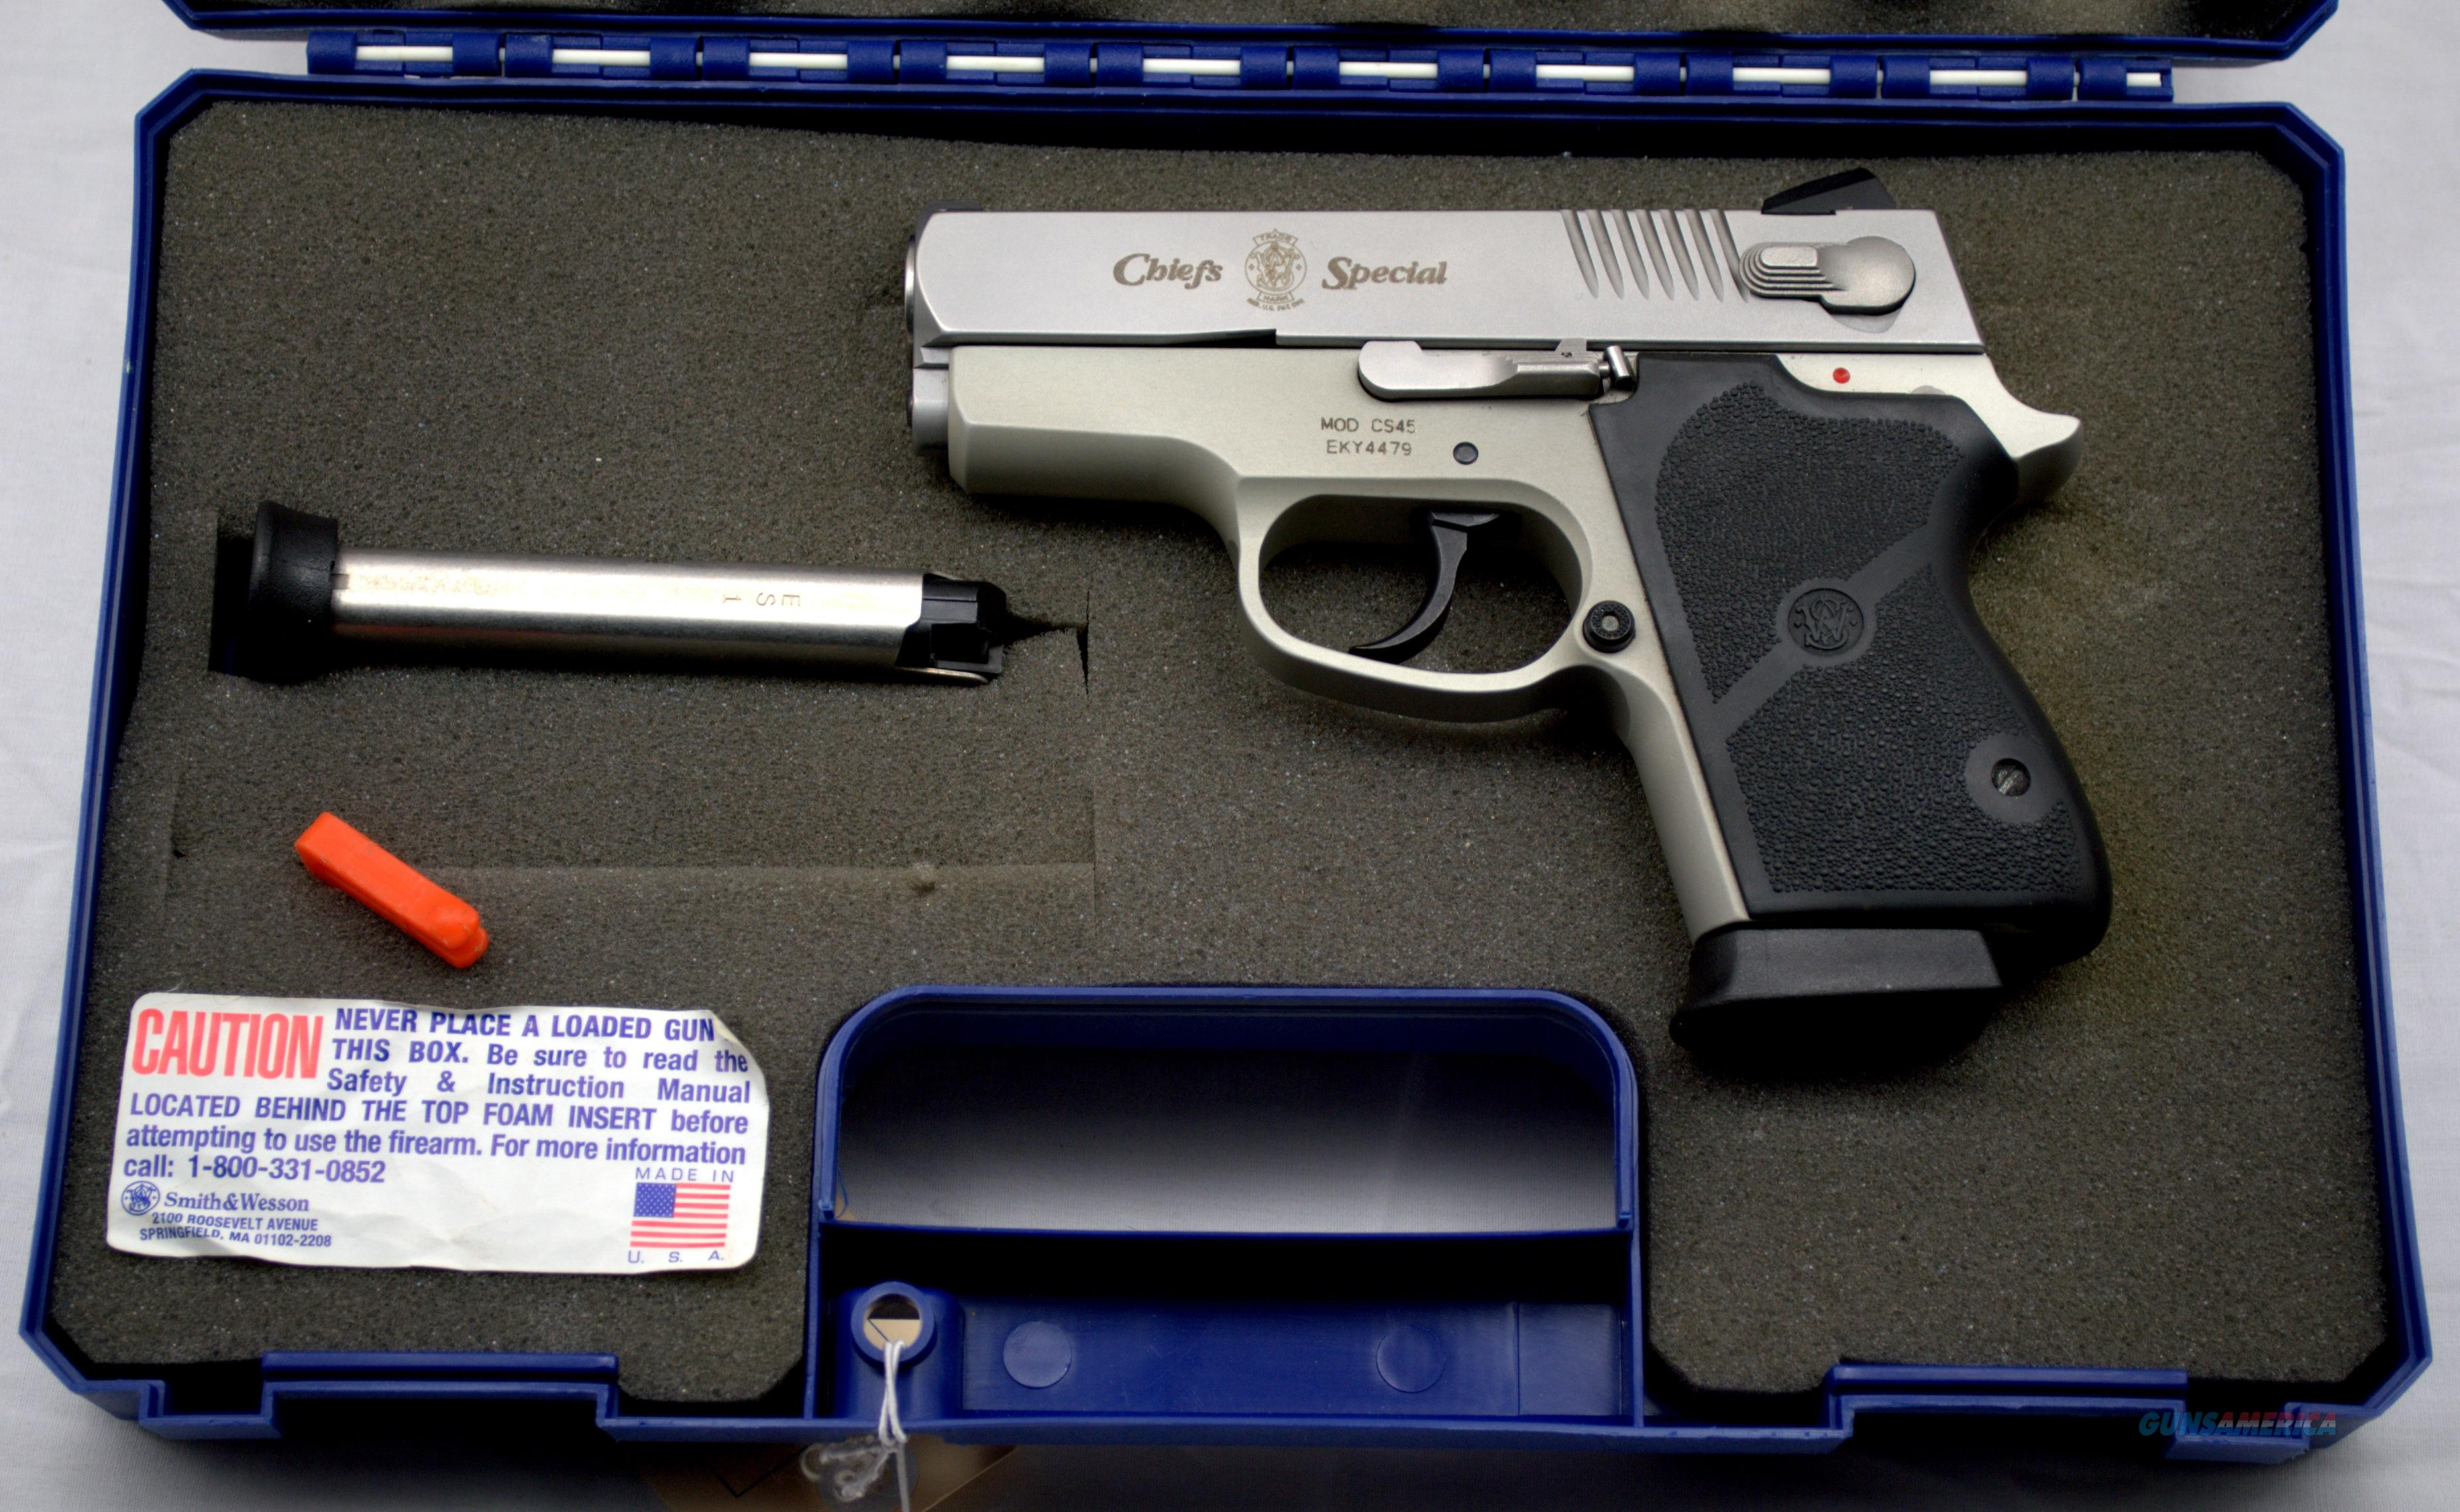 SMITH & WESSON CHIEFS SPECIAL 45 ACP  Guns > Pistols > Smith & Wesson Pistols - Autos > Alloy Frame